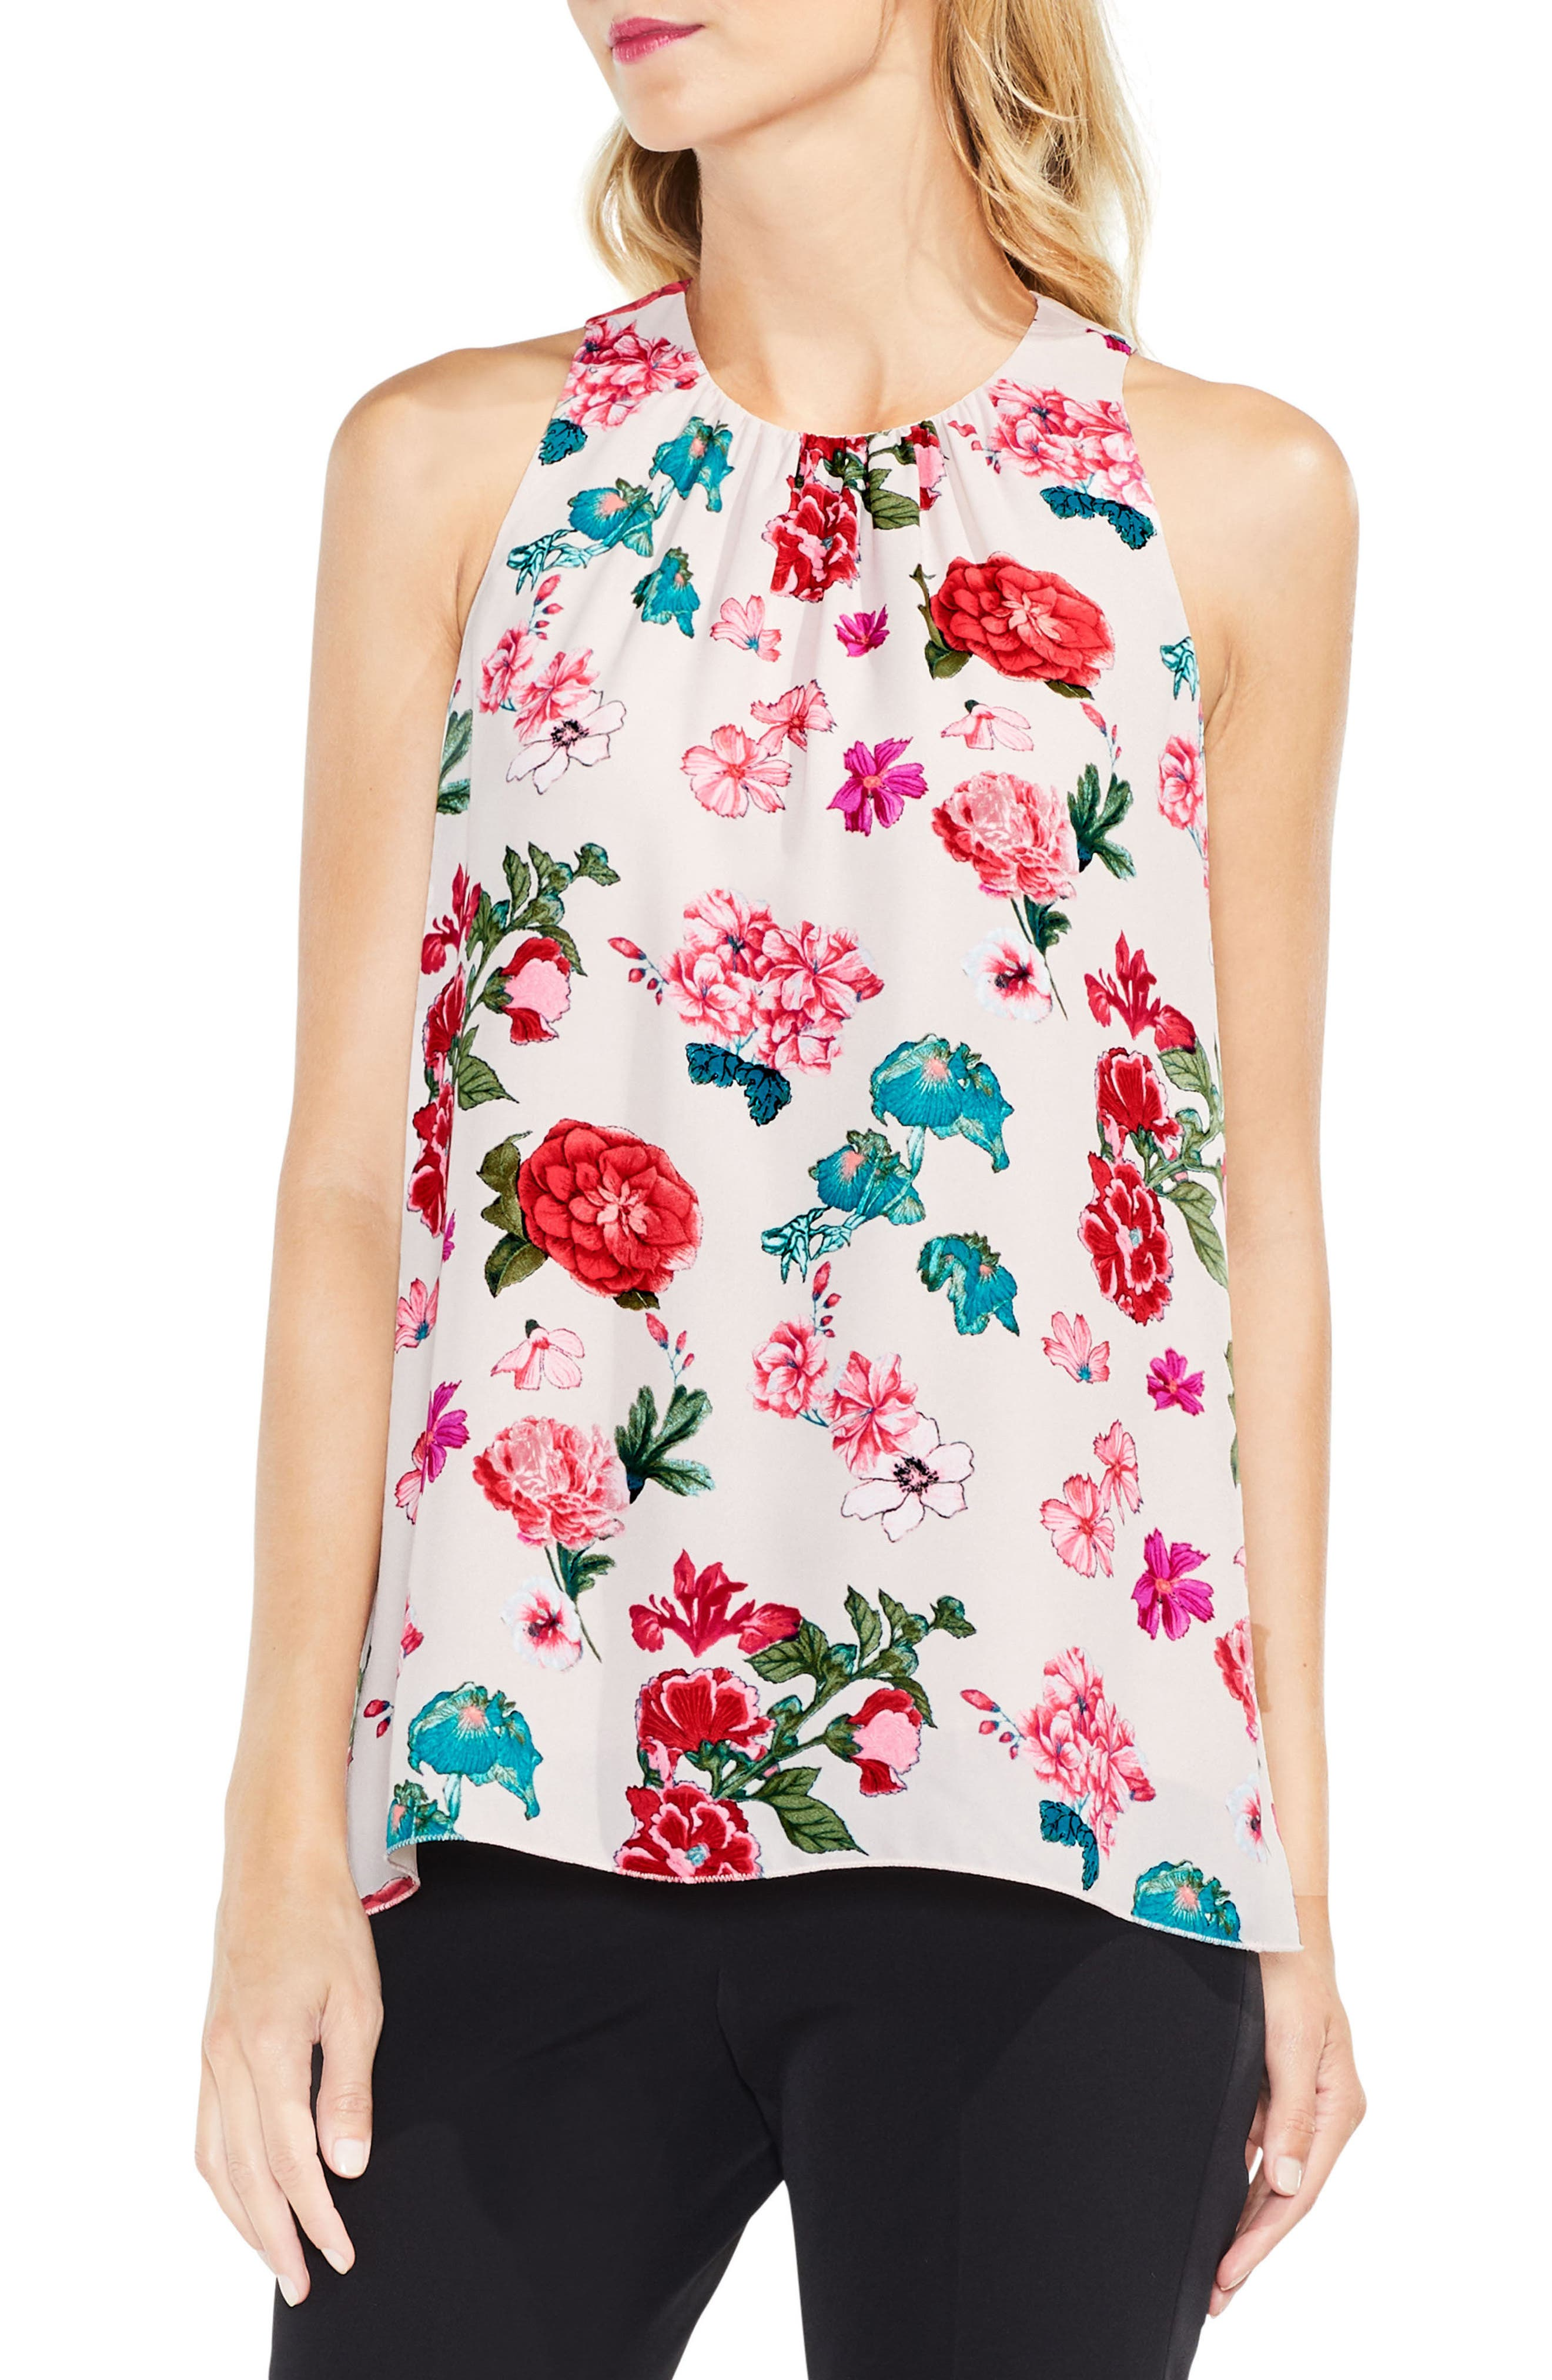 Main Image - Vince Camuto Floral Heirlooms Sleeveless Blouse